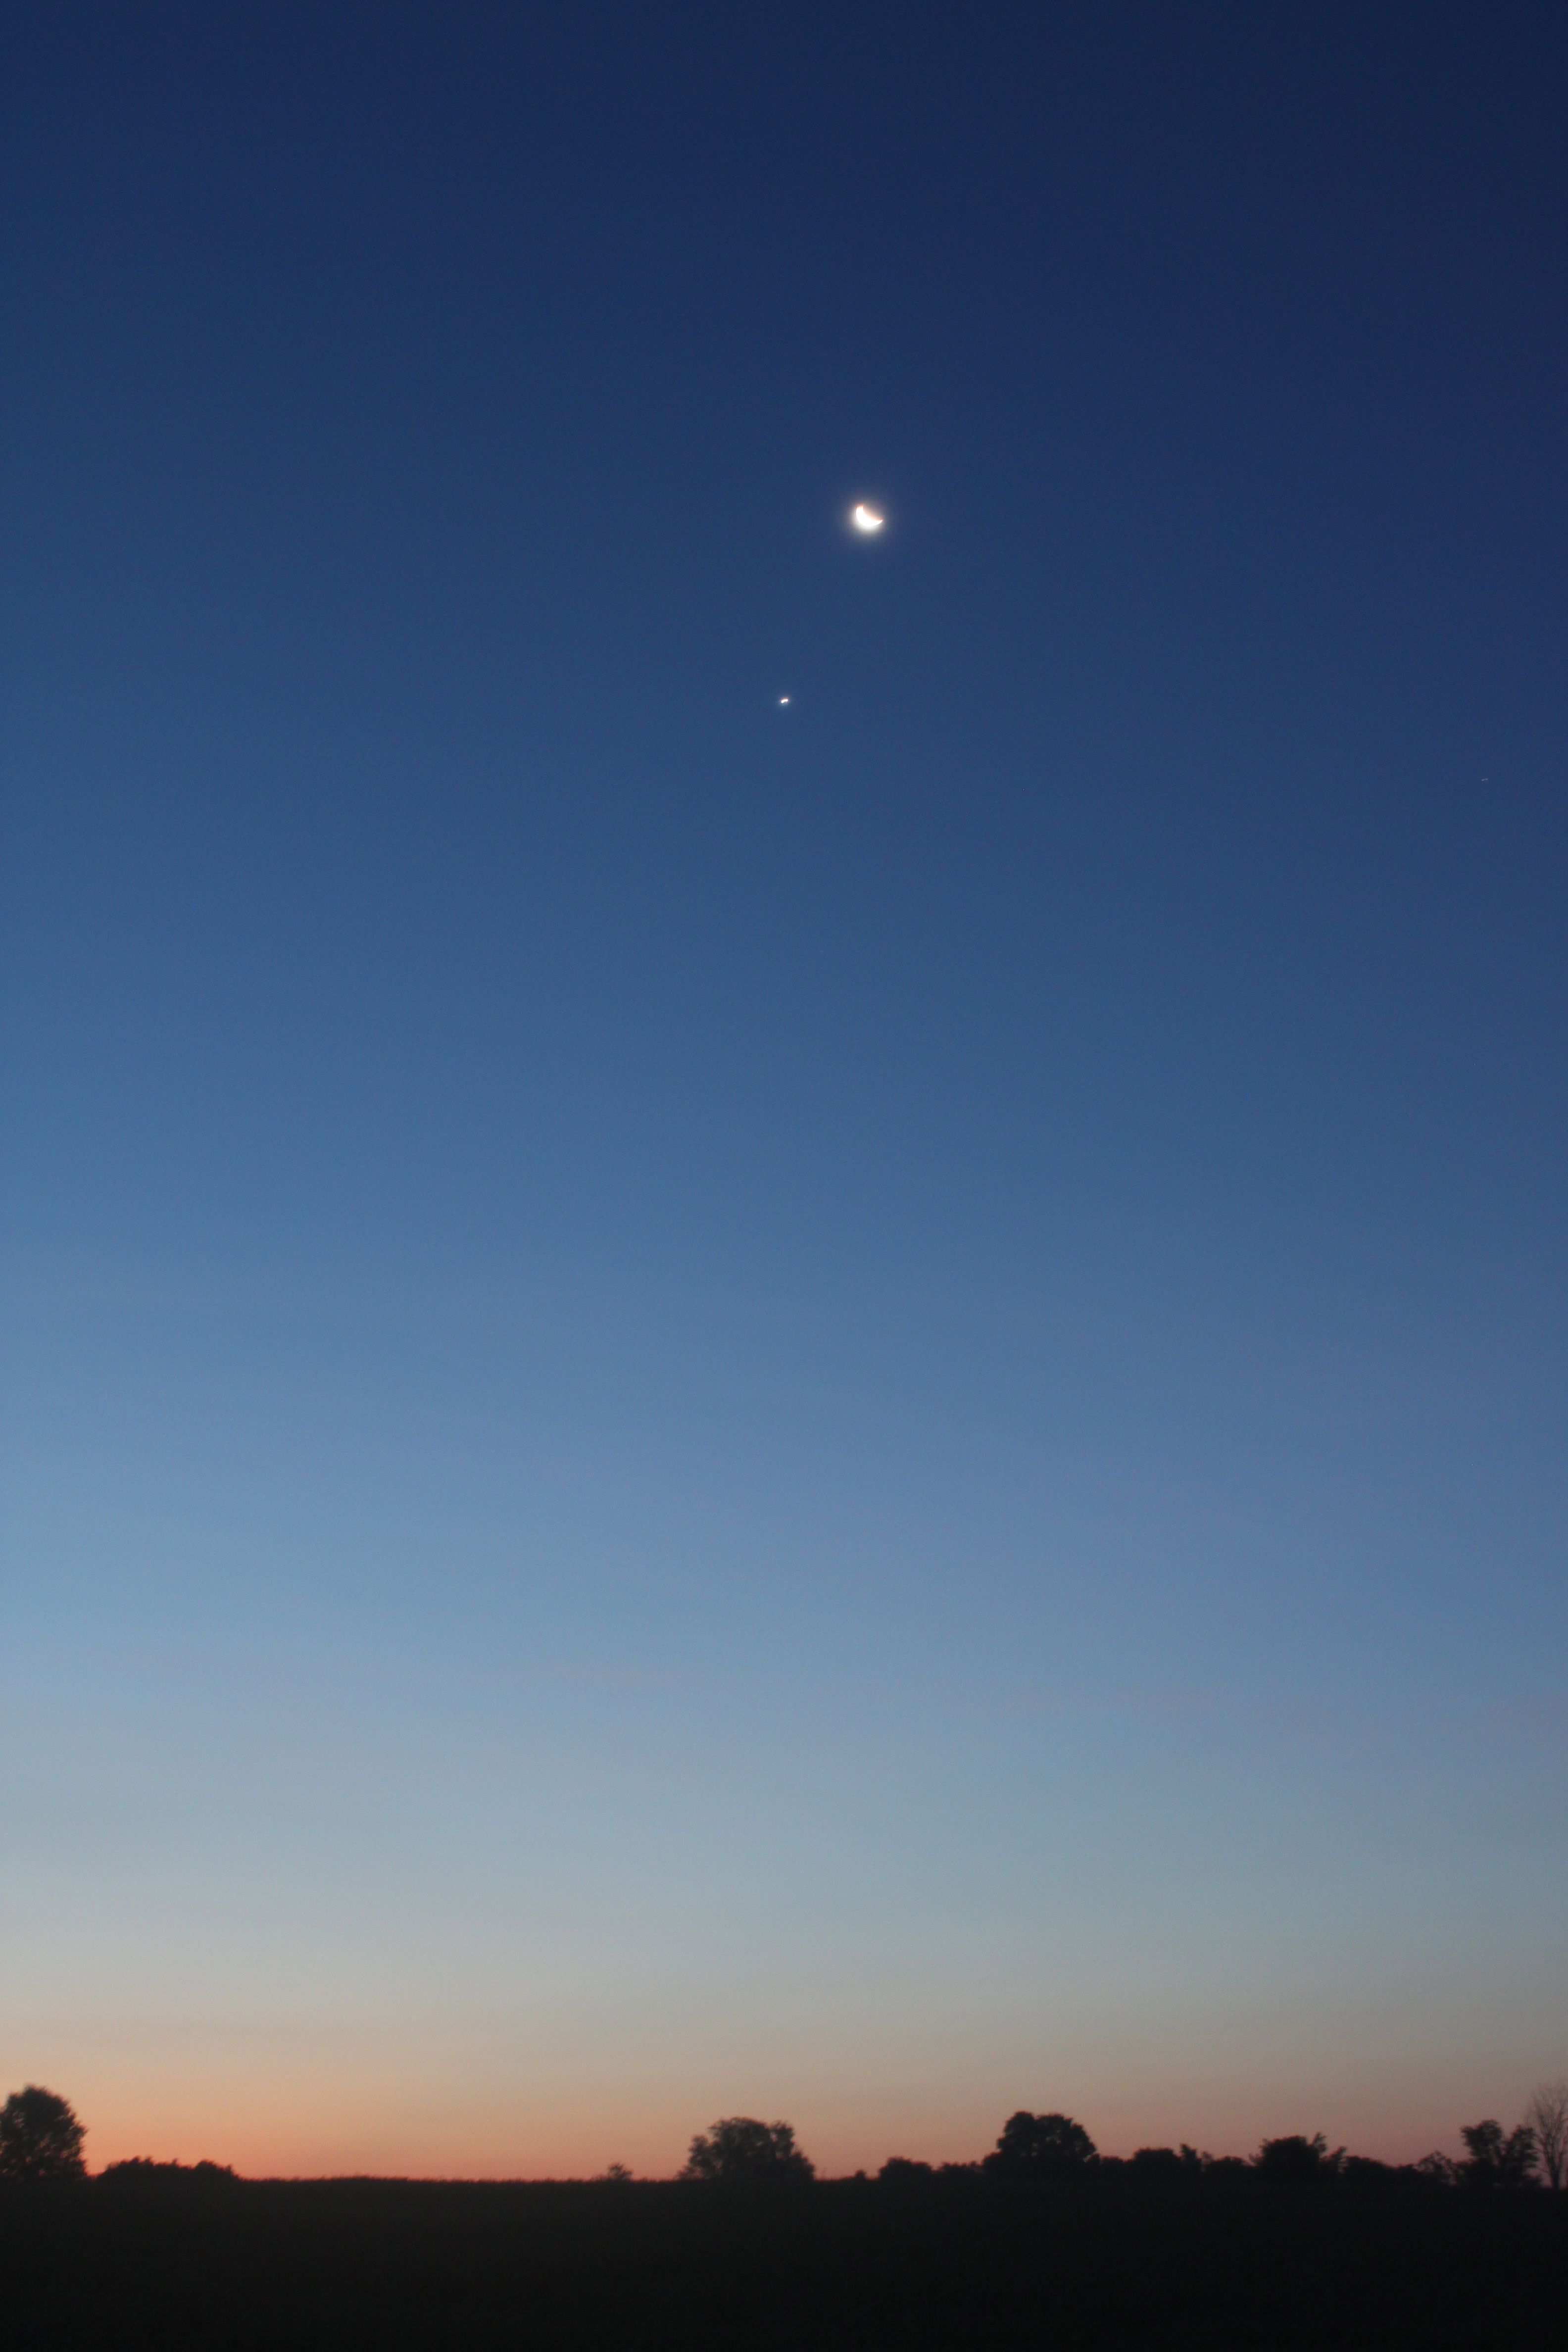 desktop planets in the sky tonight - photo #12